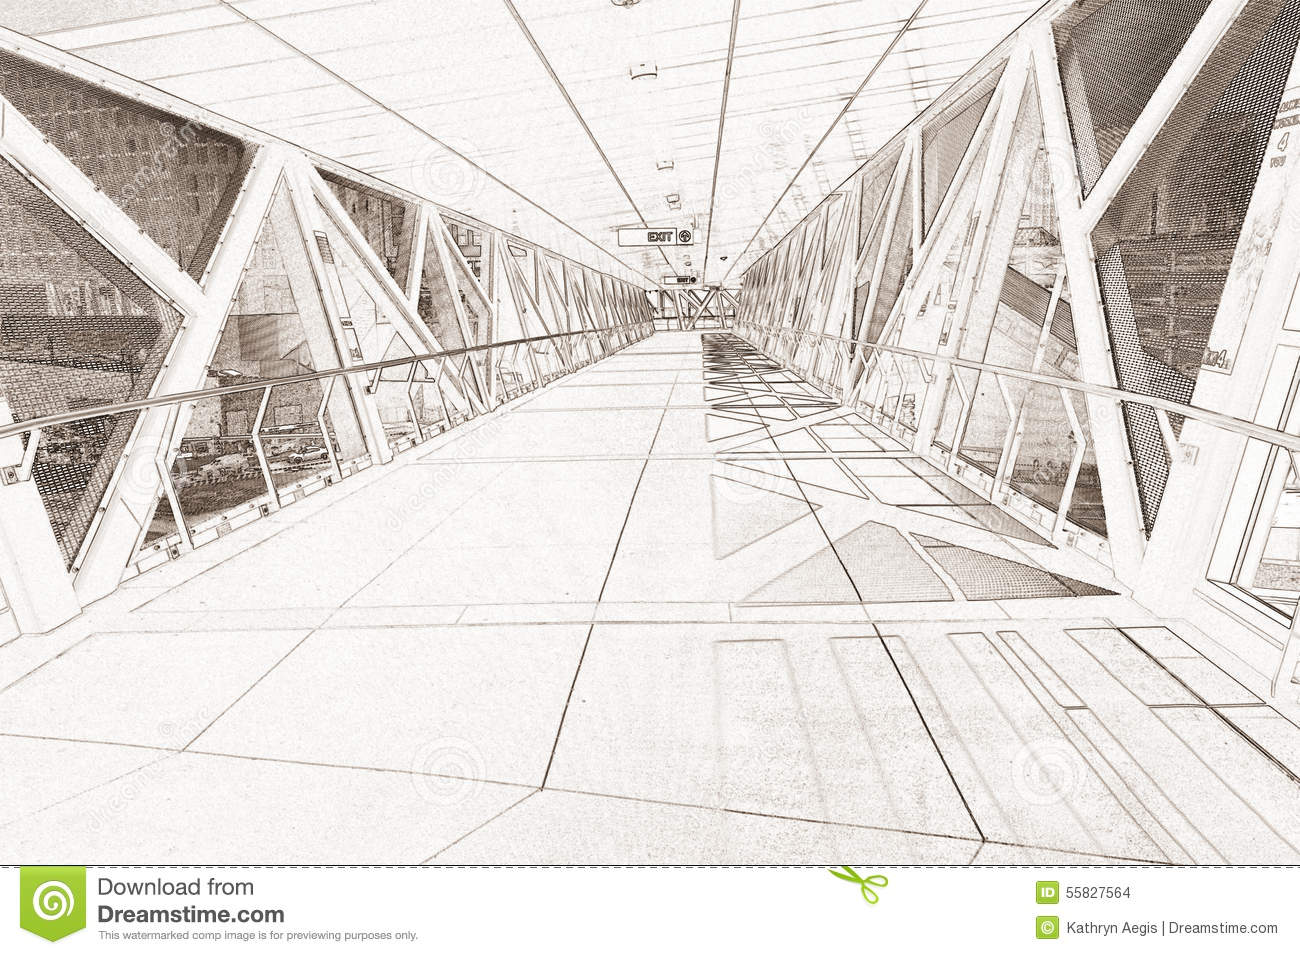 Line Art Render : Line drawing rendering of a walkway stock illustration